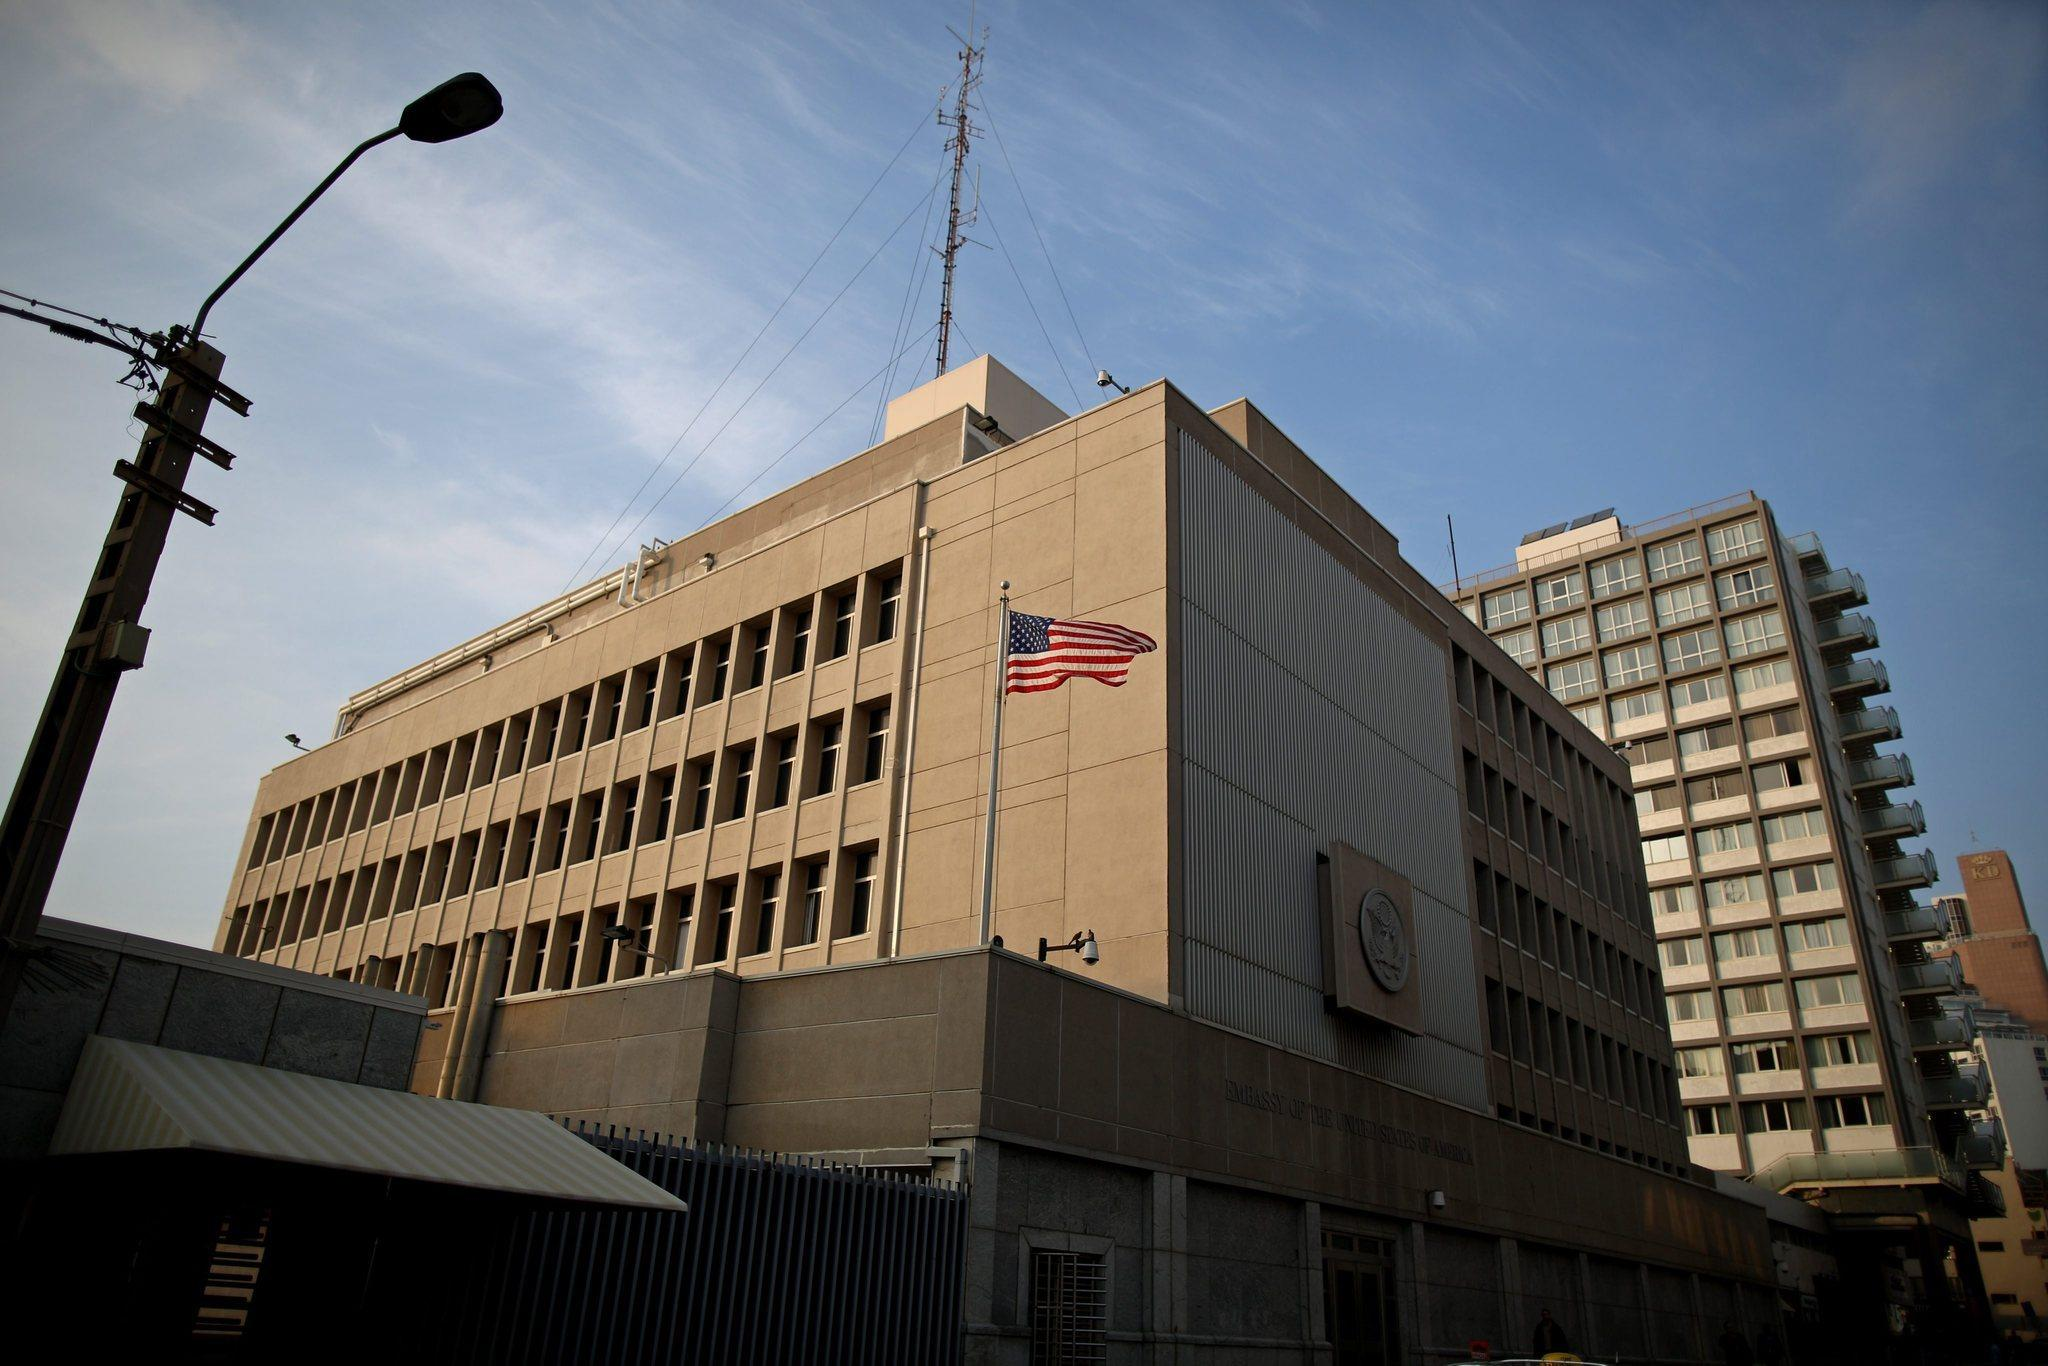 A general view of the US Embassy in Tel Aviv, Israel. Reports state that Israeli security agency Shin Bet uncovered a terror cell in Israel linked to al-Qaeda that allegedly planned a terror attack on the US embassy in Tel Aviv.